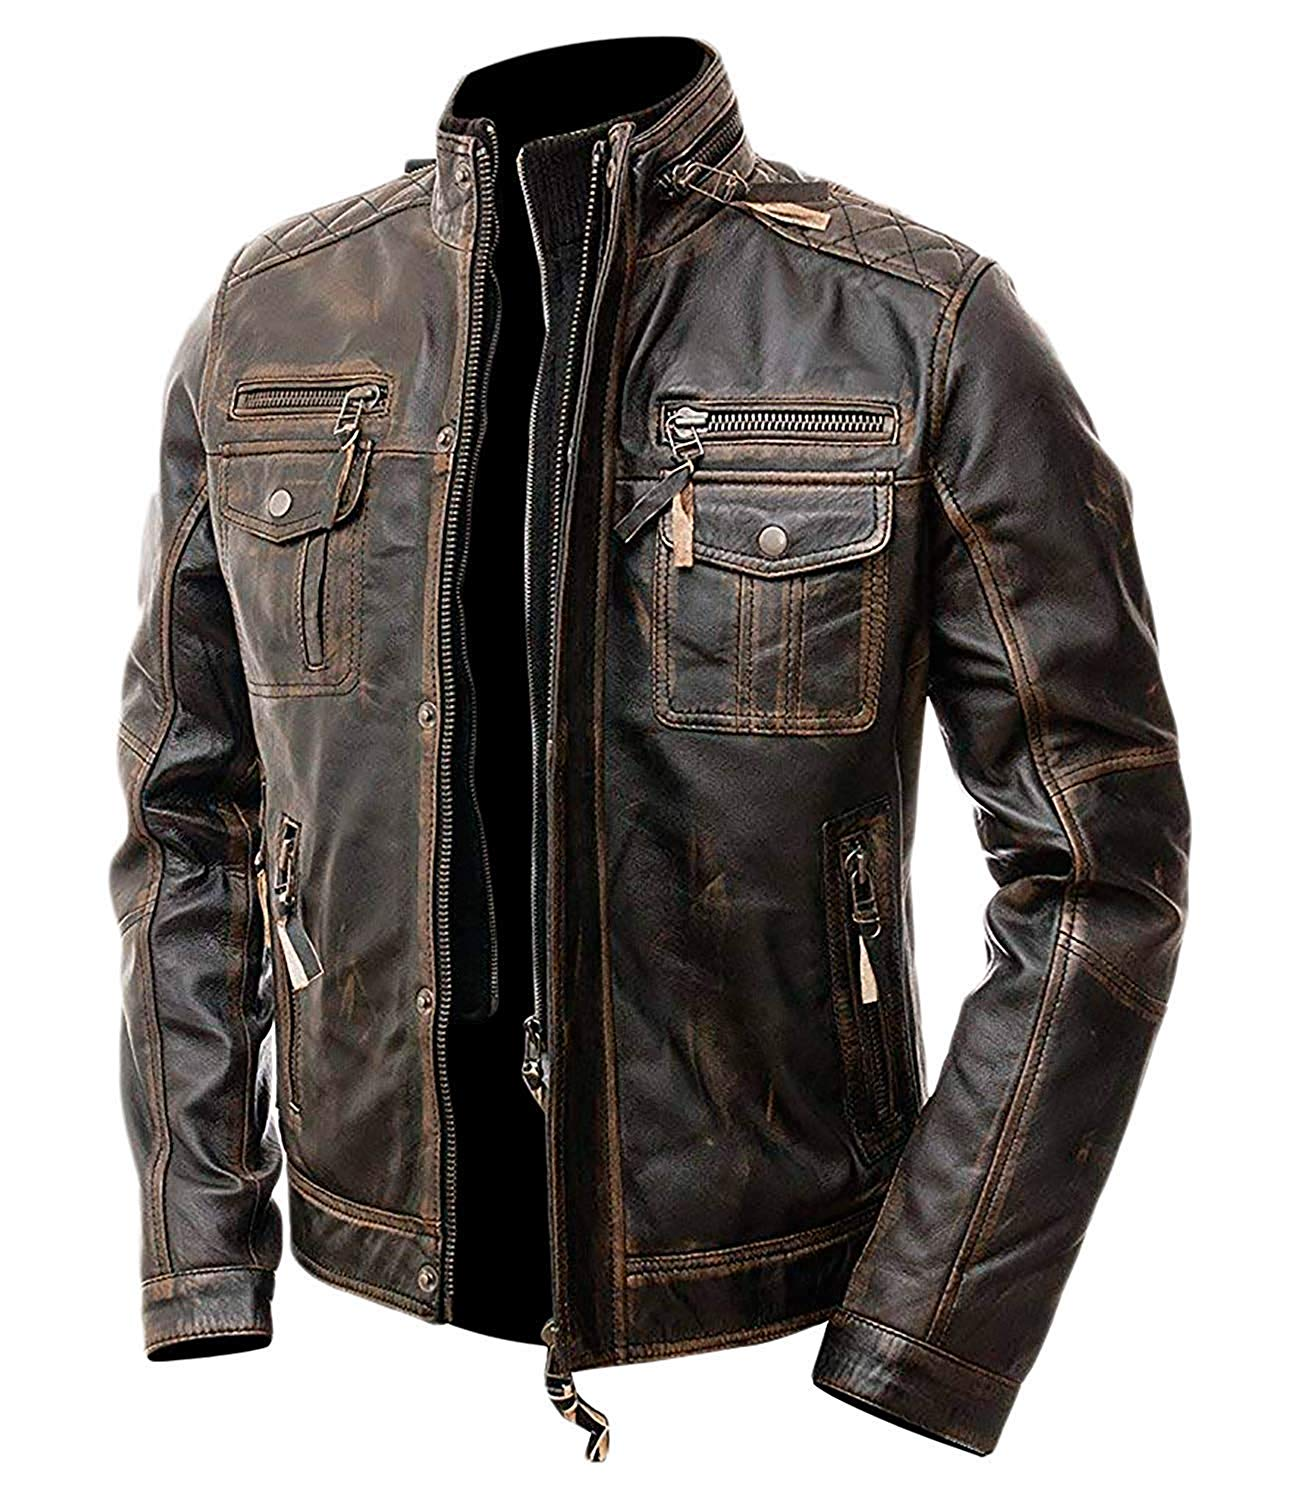 d6000af49 Cafe Racer Distressed Brown Leather Motorcycle Jacket